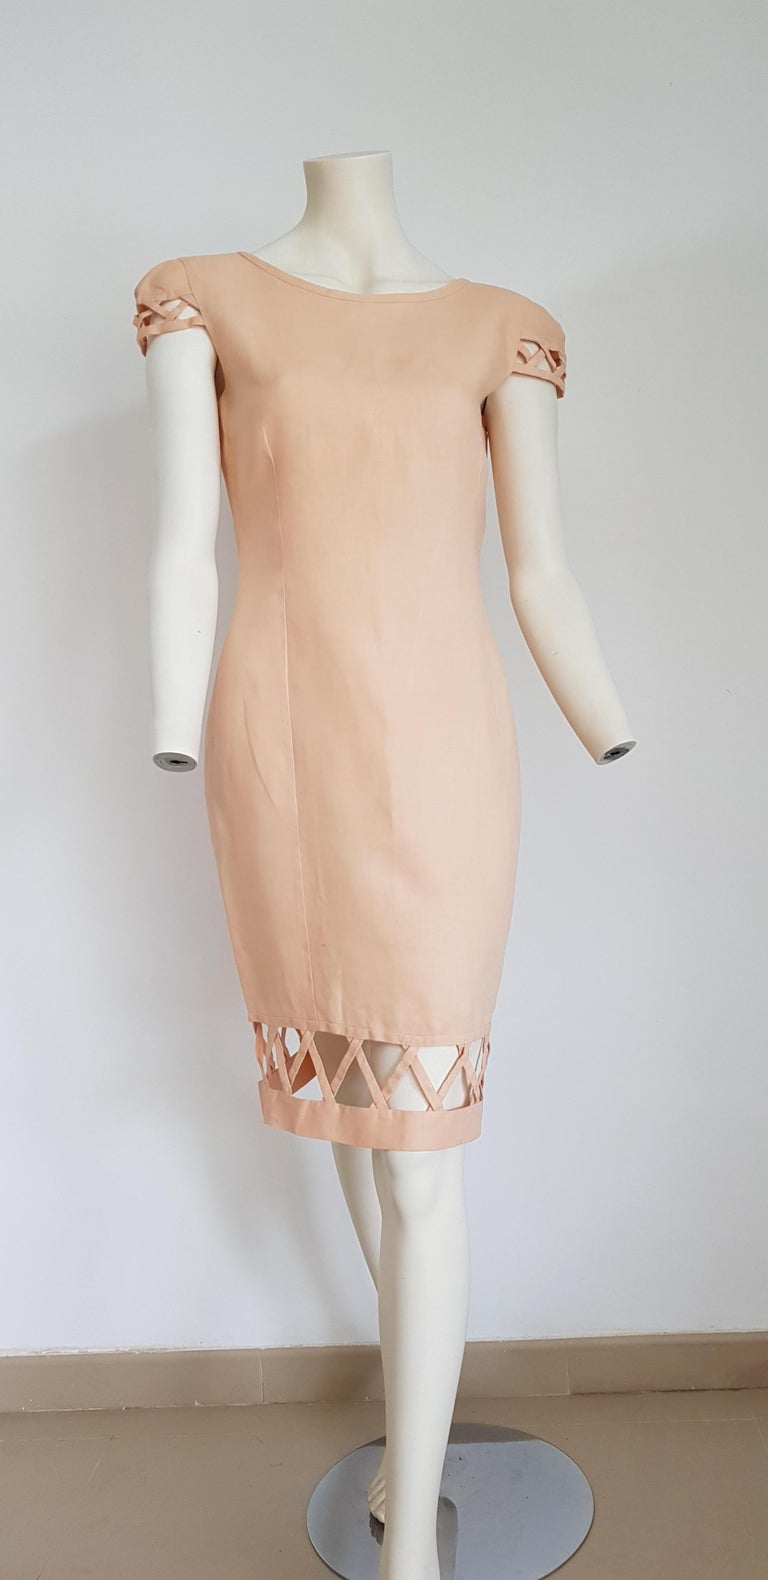 Christian LACROIX Haute Couture Irish linen with perforated edges, short sleeve, light salmon color dress - Unworn, New.  SIZE: equivalent to about Small / Medium, please review approx measurements as follows in cm: lenght 98, chest underarm to